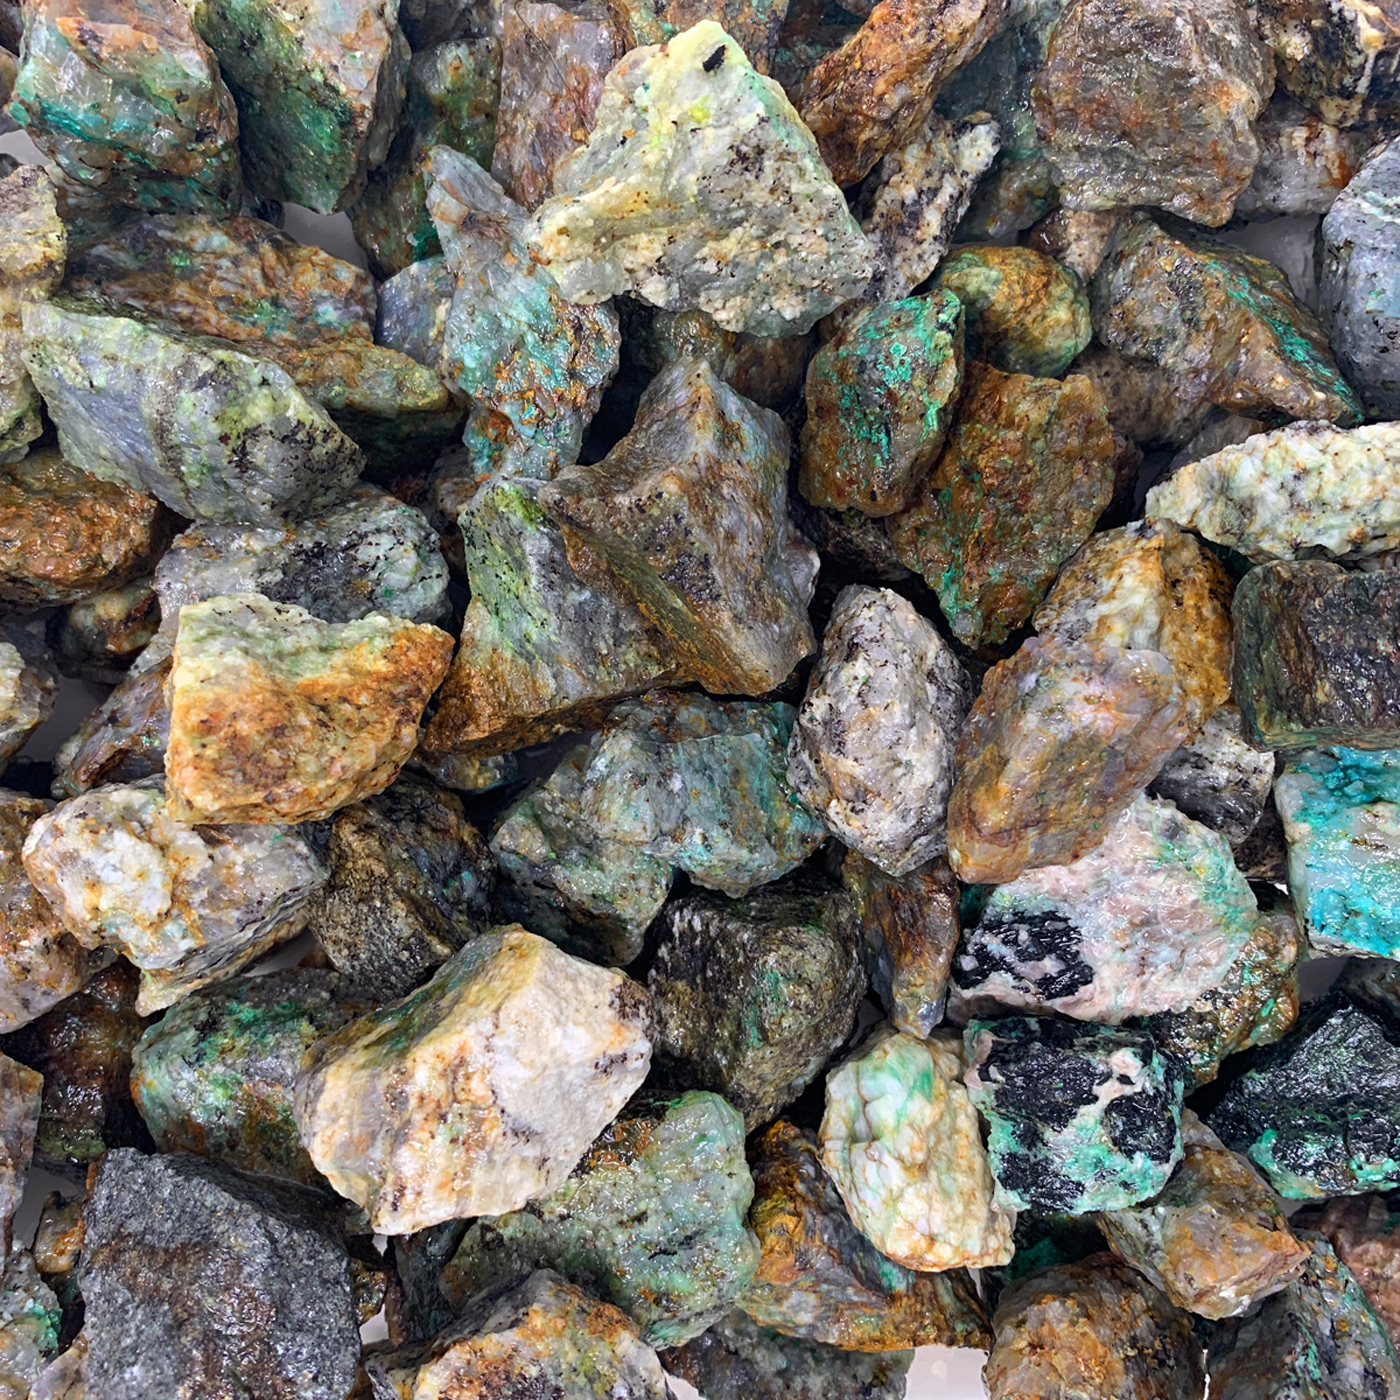 WireJewelry 1.5 lbs of Bulk Rough Chrysocolla Stone - Large Natural Rough Stone and Crystals for Tumbling